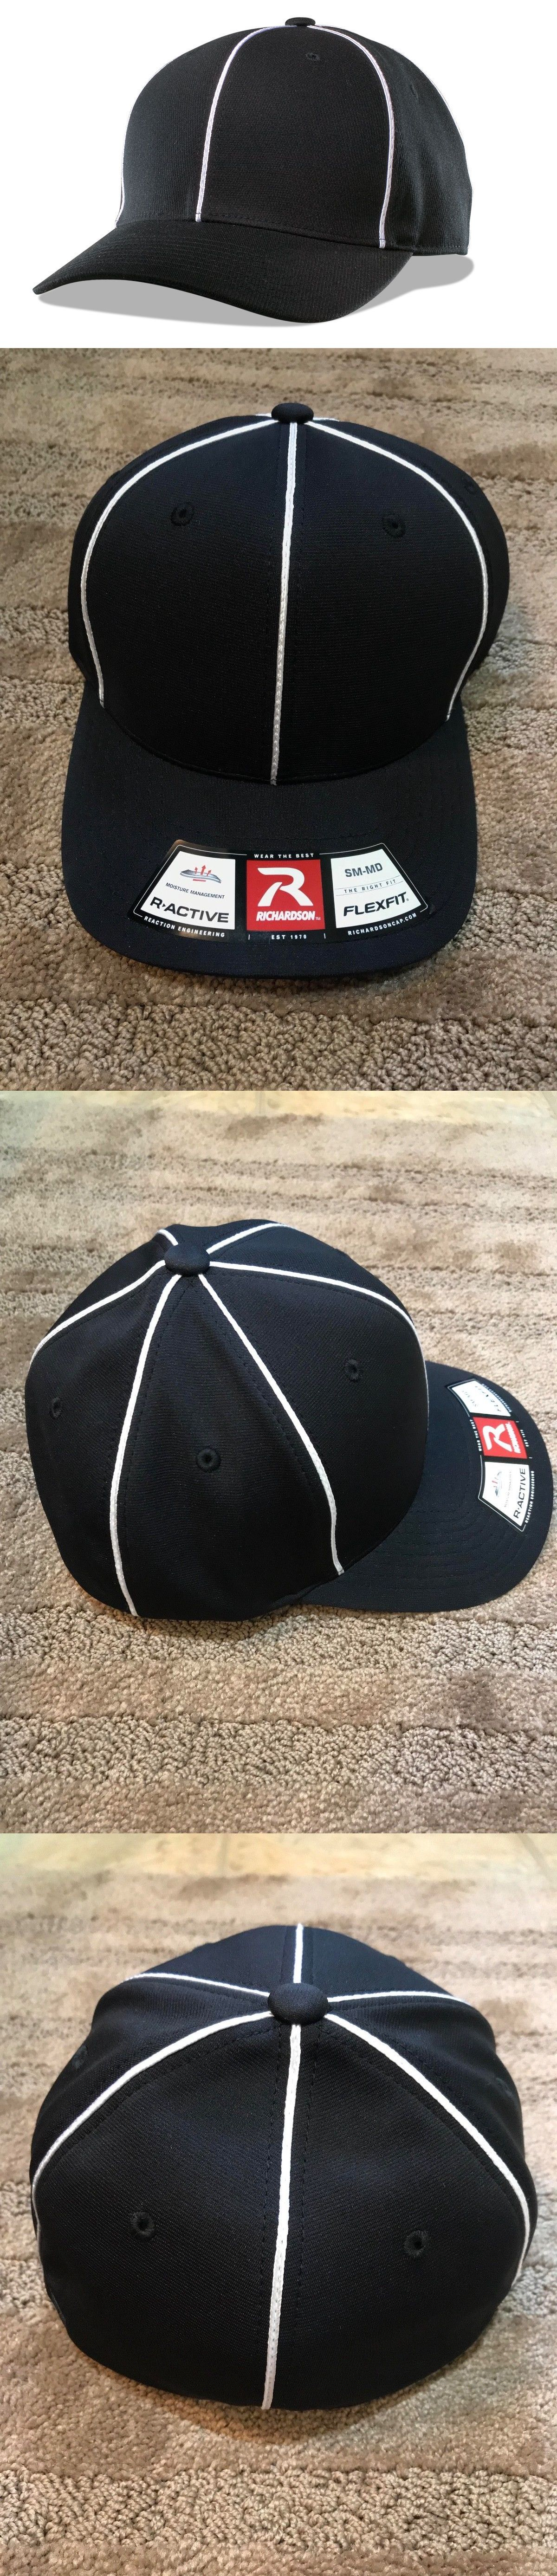 4b93c9f30e3 Hats and Headwear 159057  Richardson 485 Referee Hat Cap Black White  Official Referee All Sizes